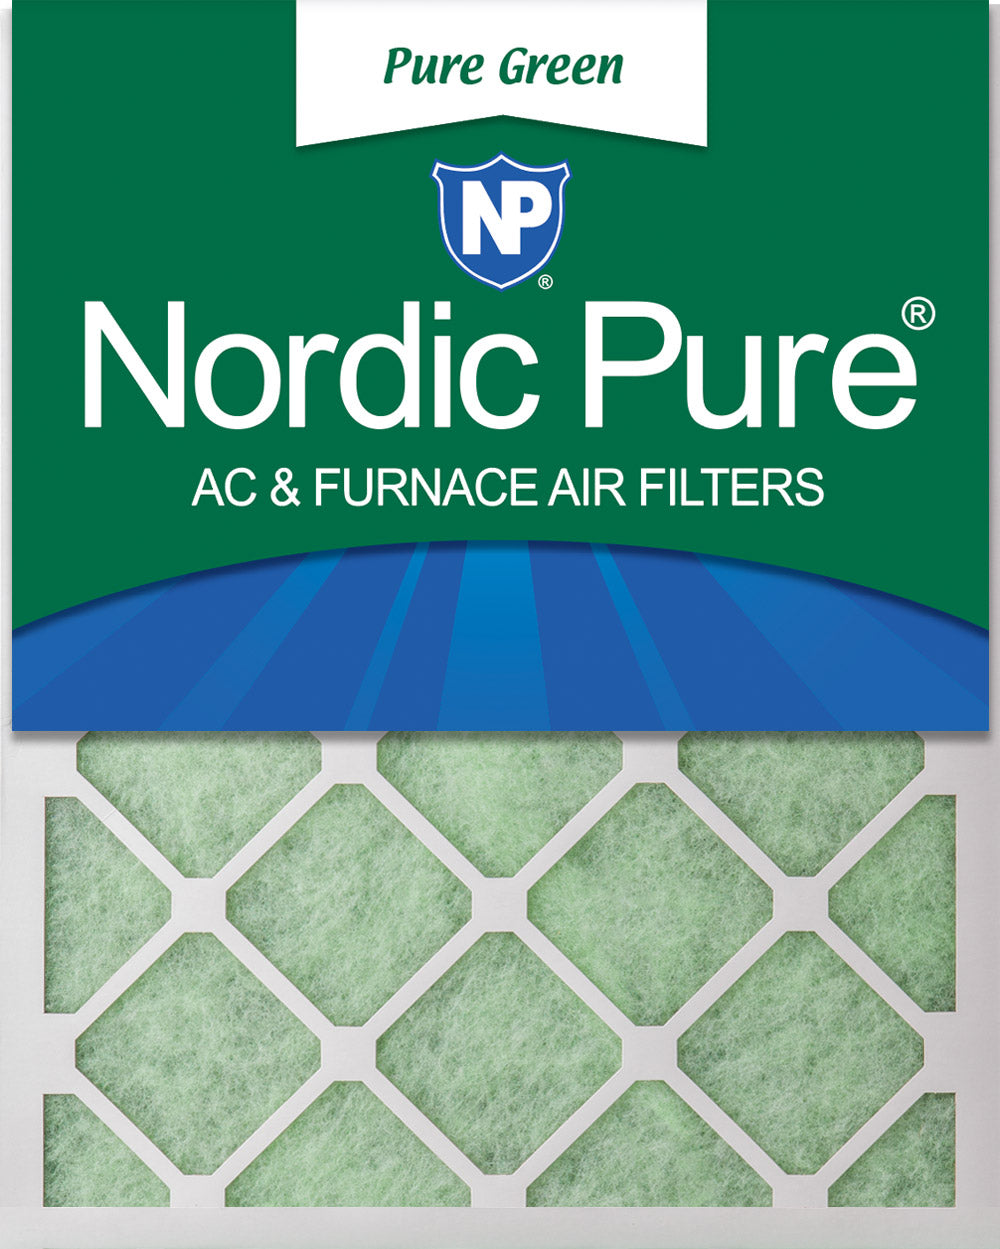 Nordic Pure 8x20x1 Exact MERV 10 Pleated AC Furnace Air Filters 3 Pack